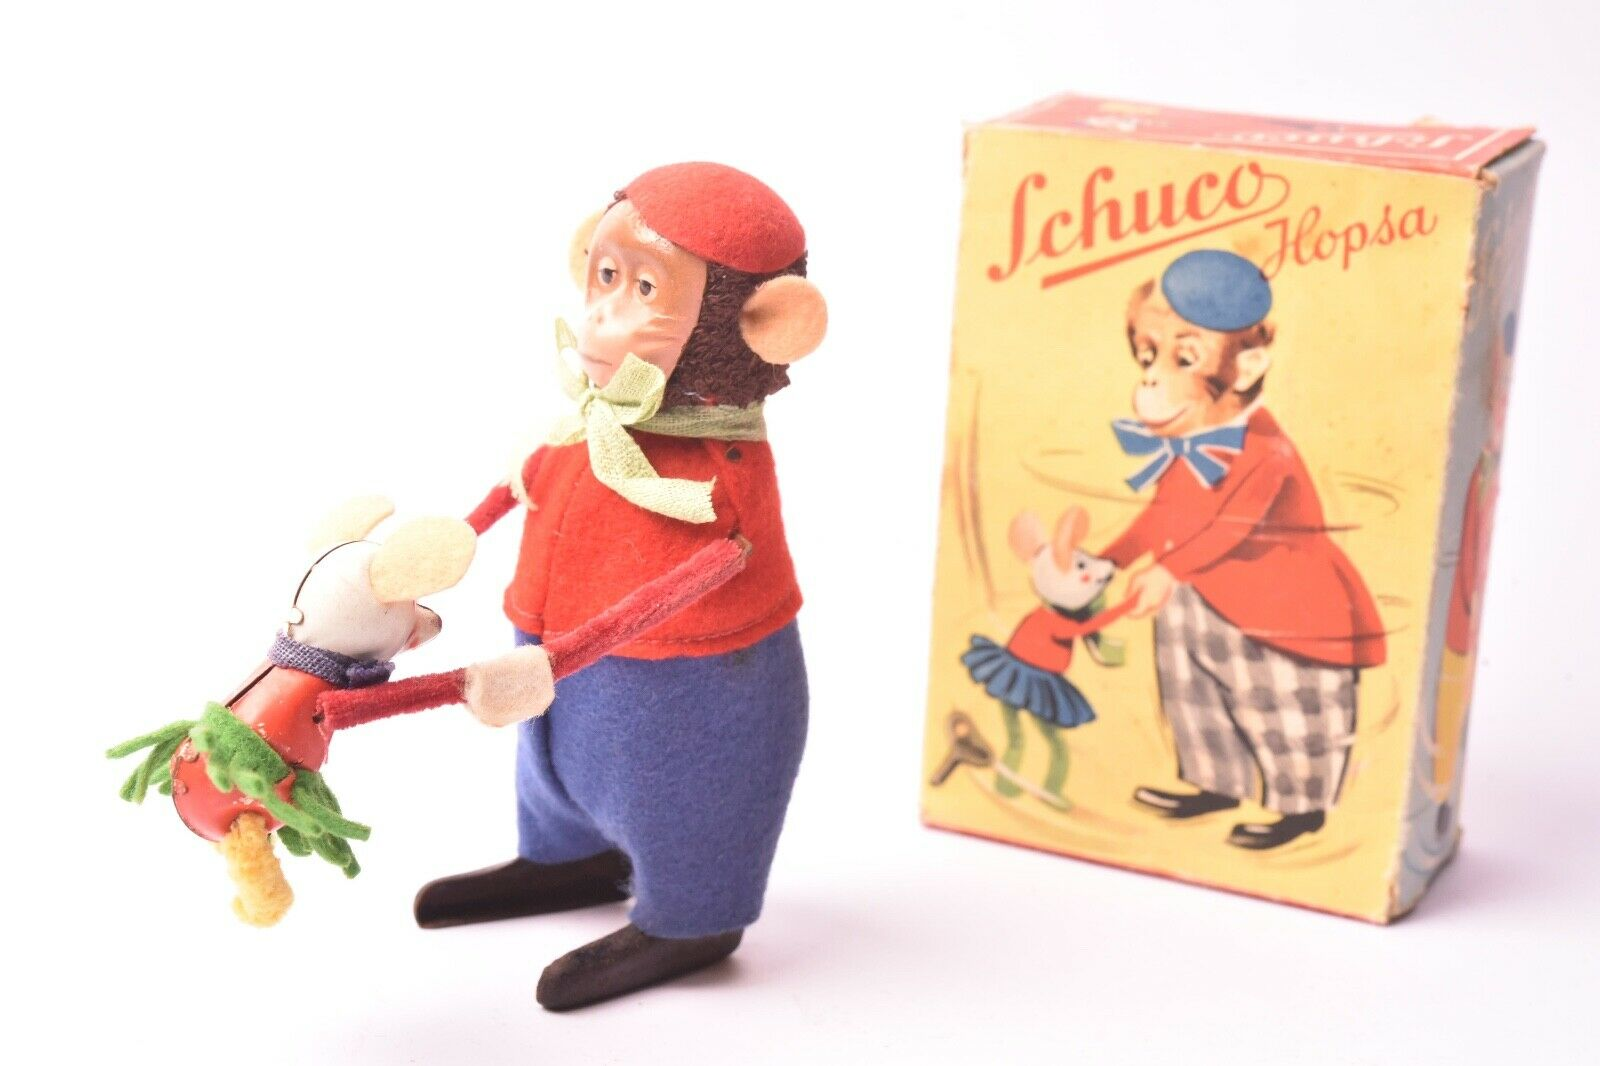 Toy Ancien. Mouse Dancers, Schuco Germany, around 1950, Sheet Metal Lithographed